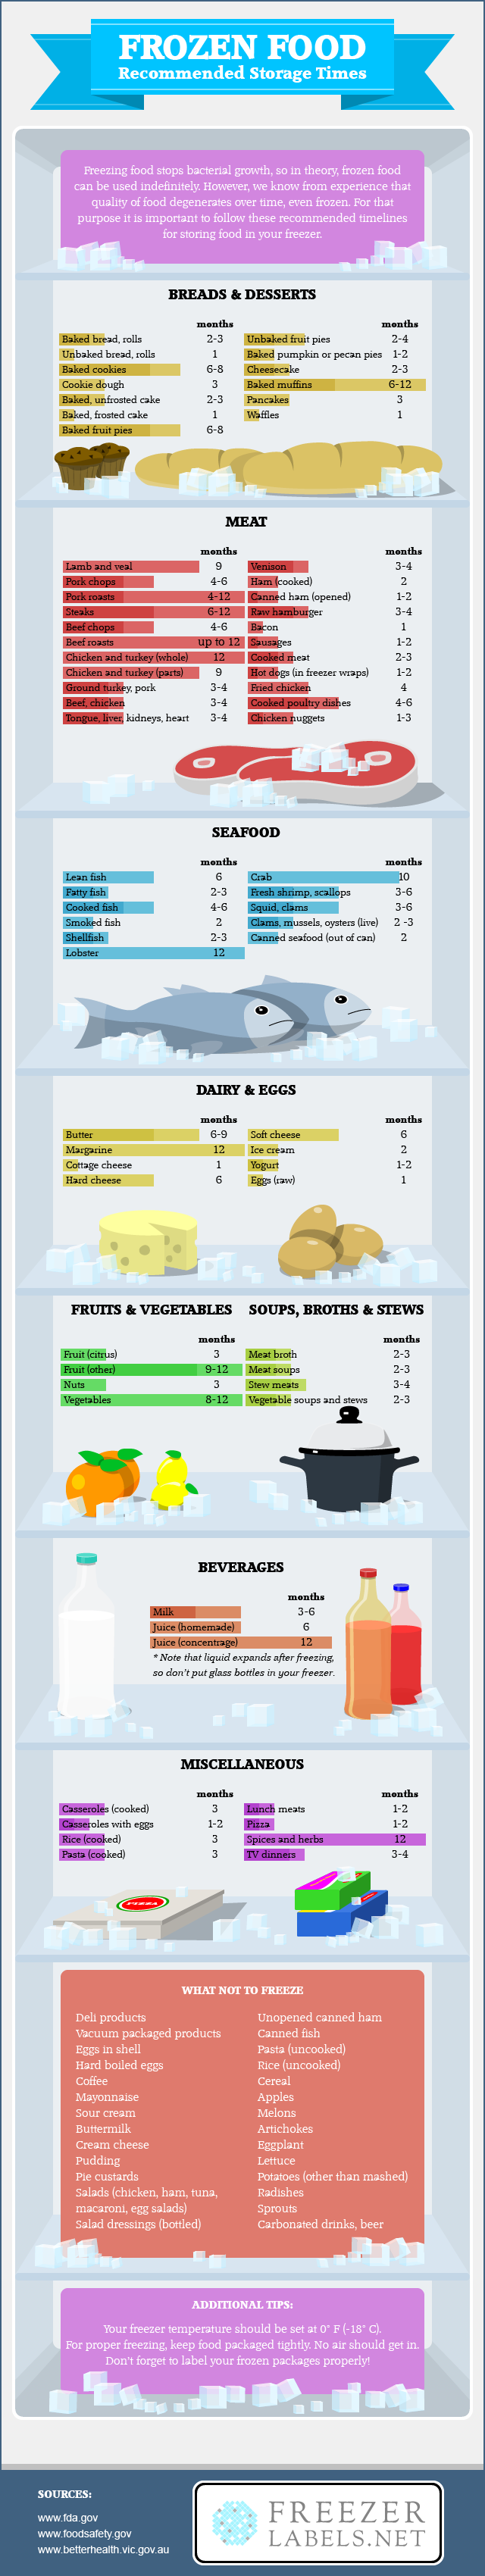 Frozen Food: Recommended Storage Times by FreezerLabels.net